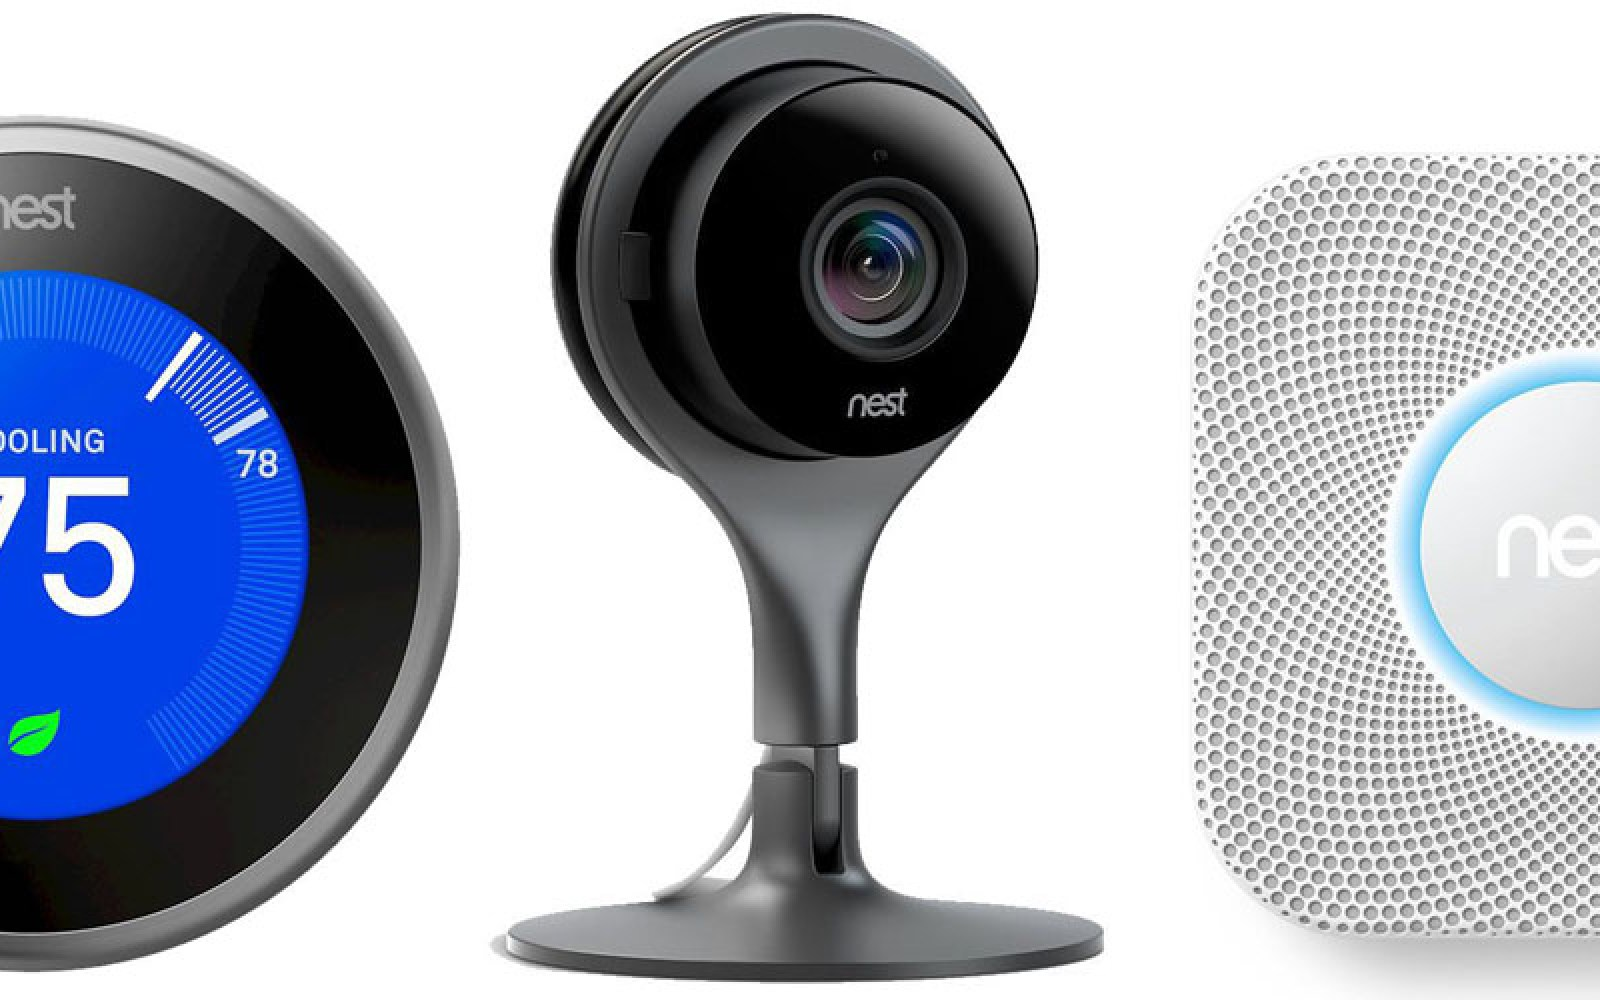 Nest smart thermostat to support room-by-room control; Nest Cam adding face-recognition; more – Bloomberg